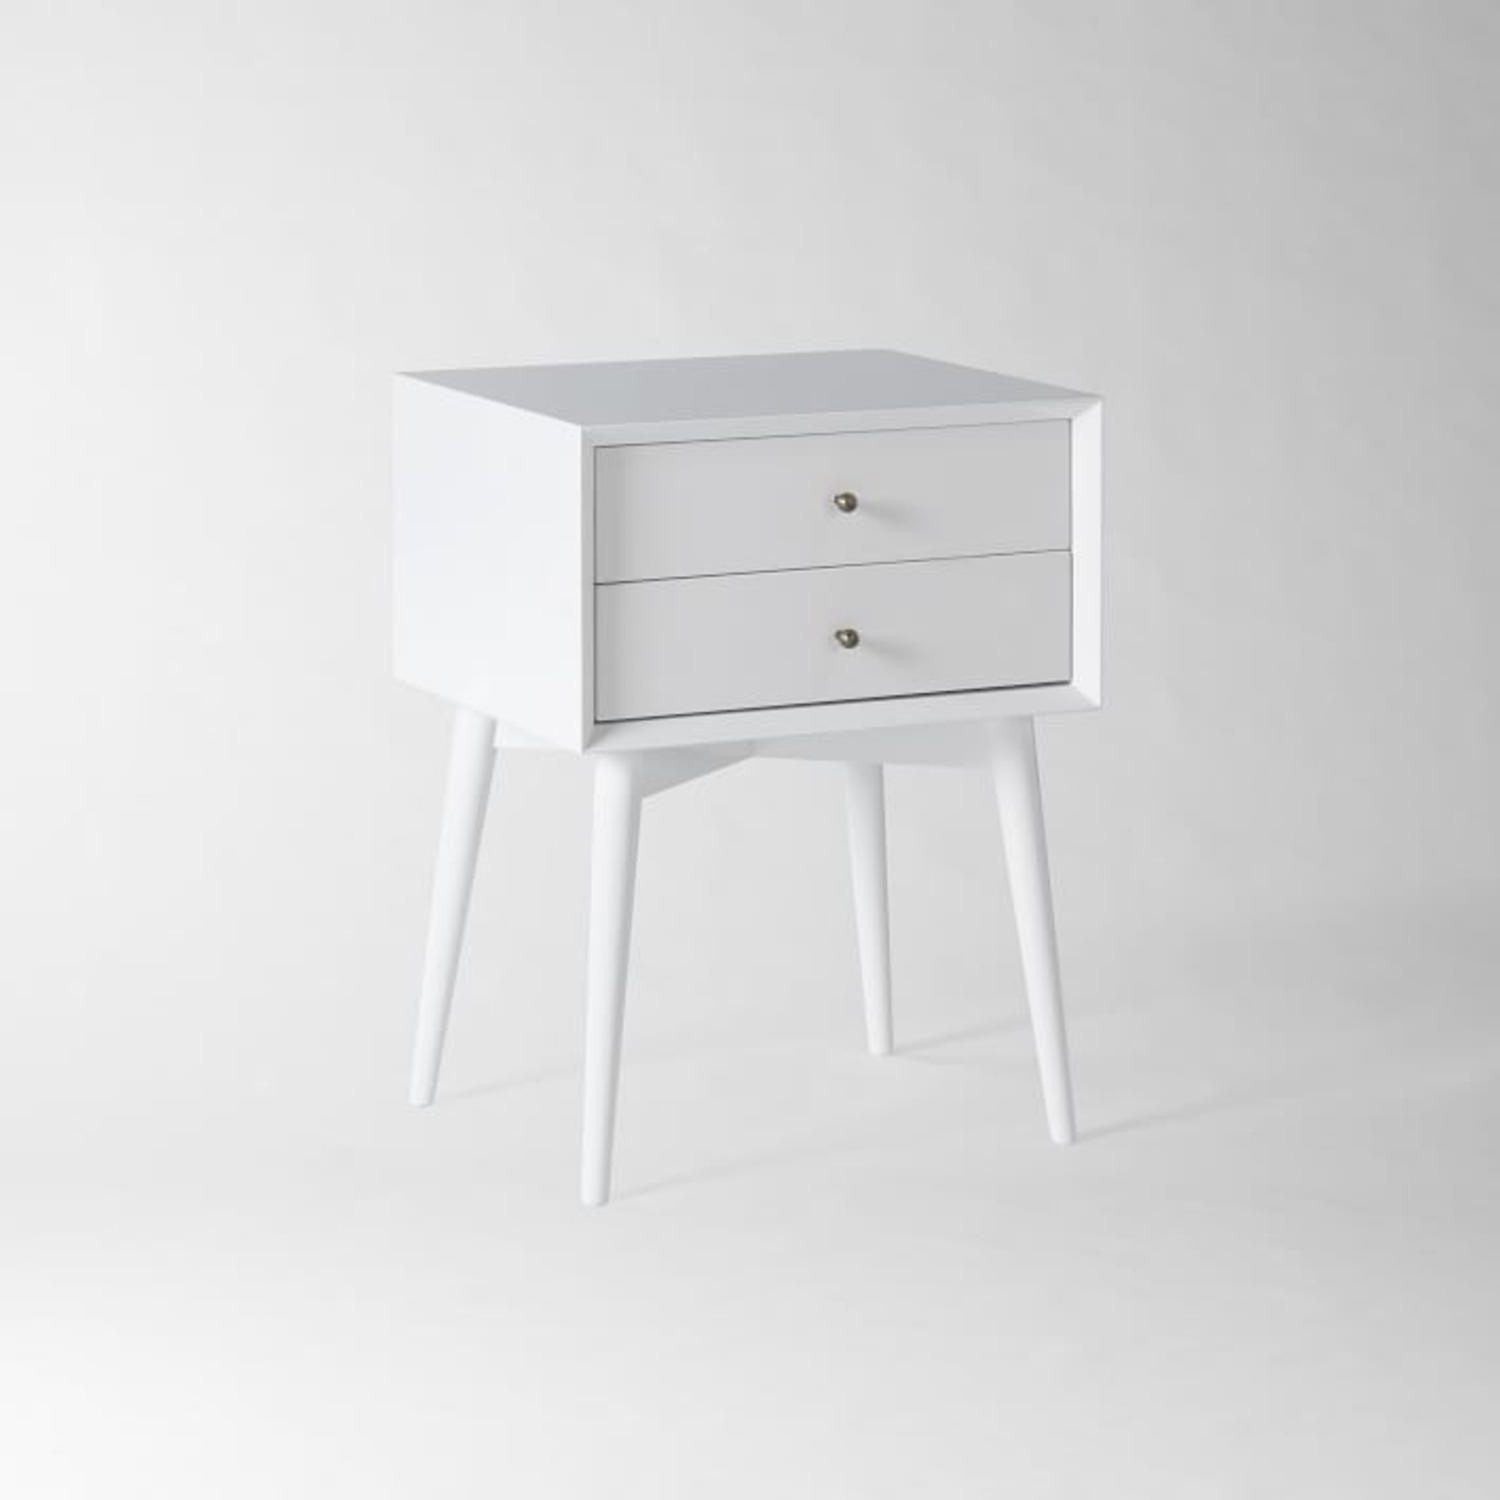 West Elm Mid-Century Nightstand, White Lacquer - image-3